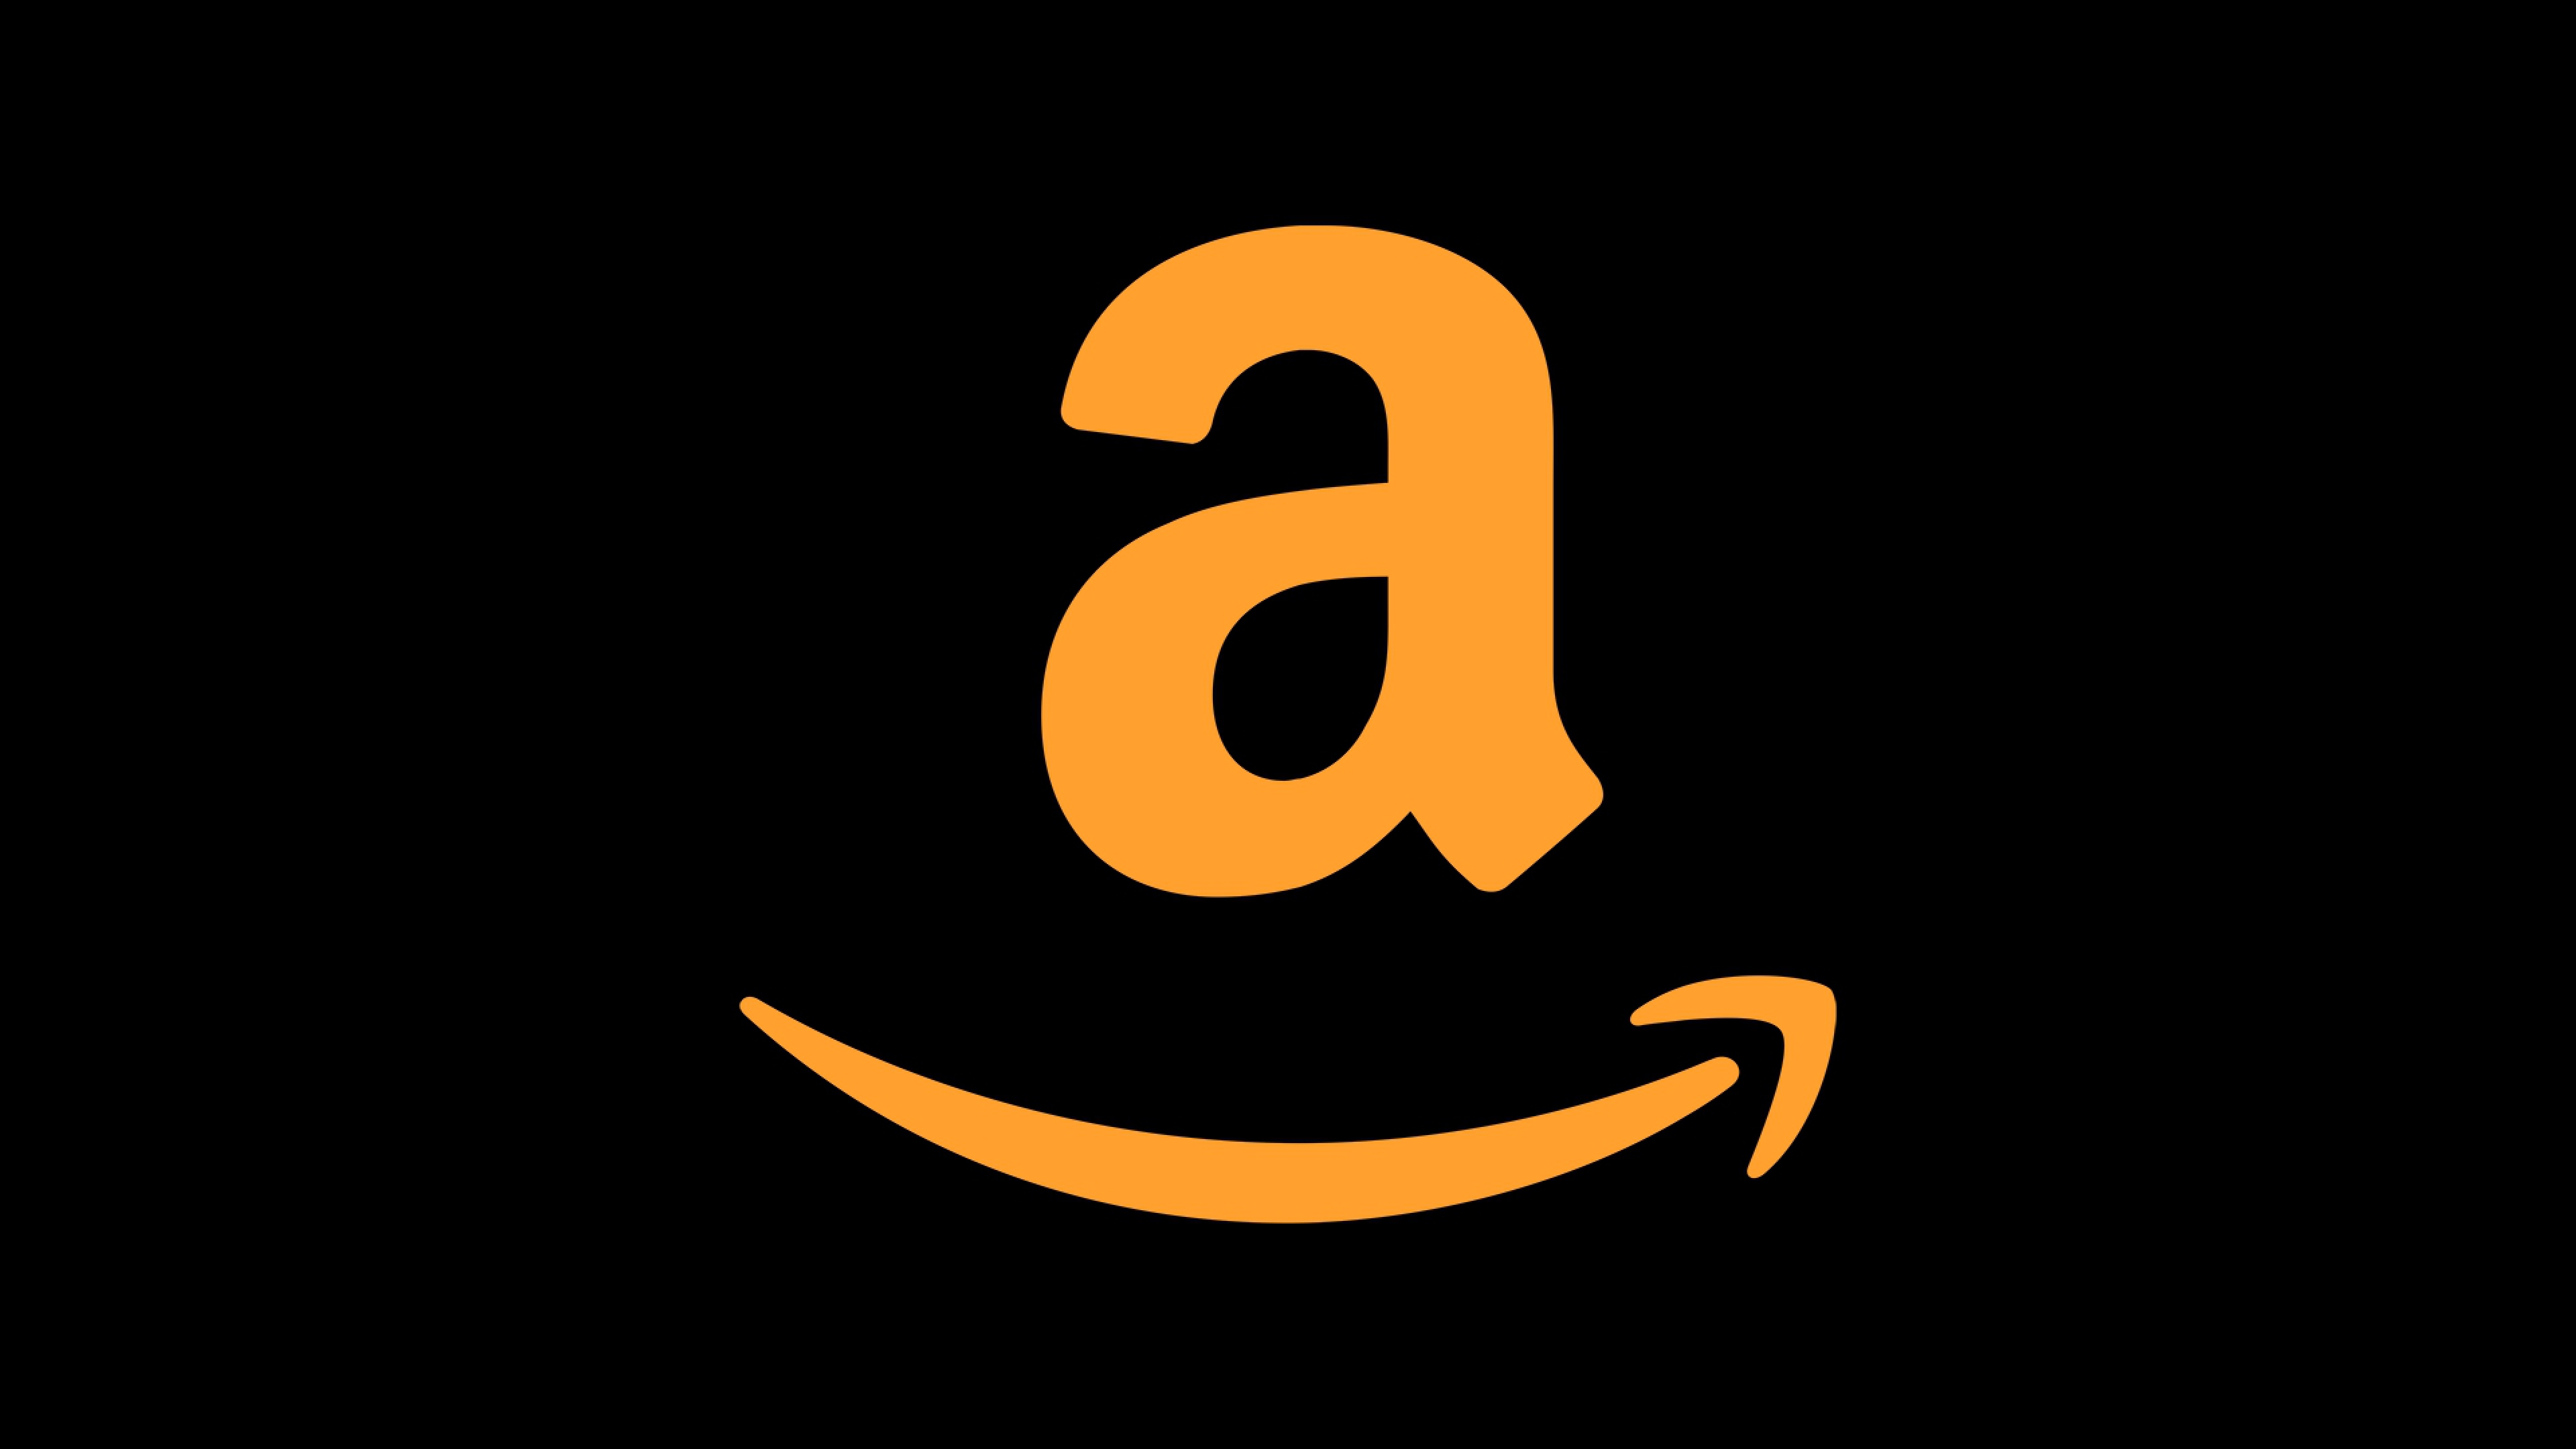 Amazon k Logo HD Logo k Wallpapers Images Backgrounds Photos